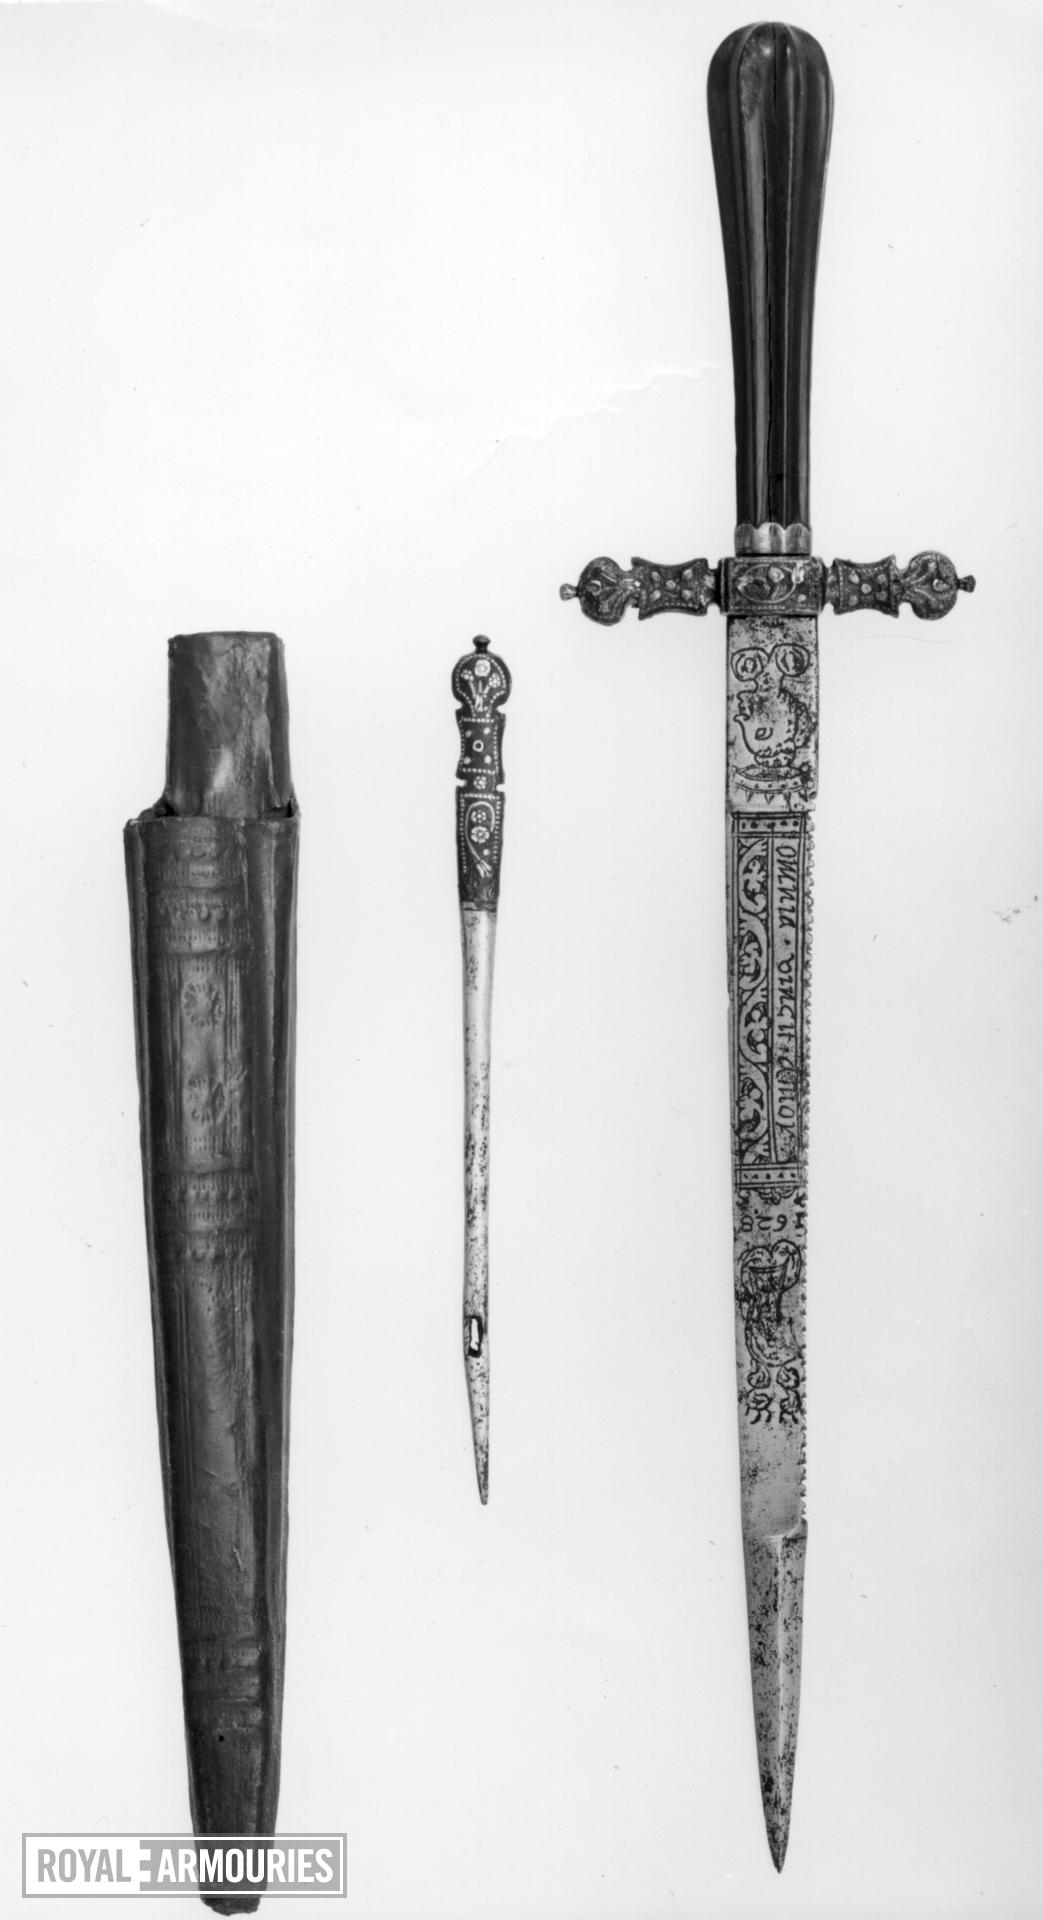 Dagger and sheath - Quillon Dagger Quillon dagger and sheath, with bodkin by-knife